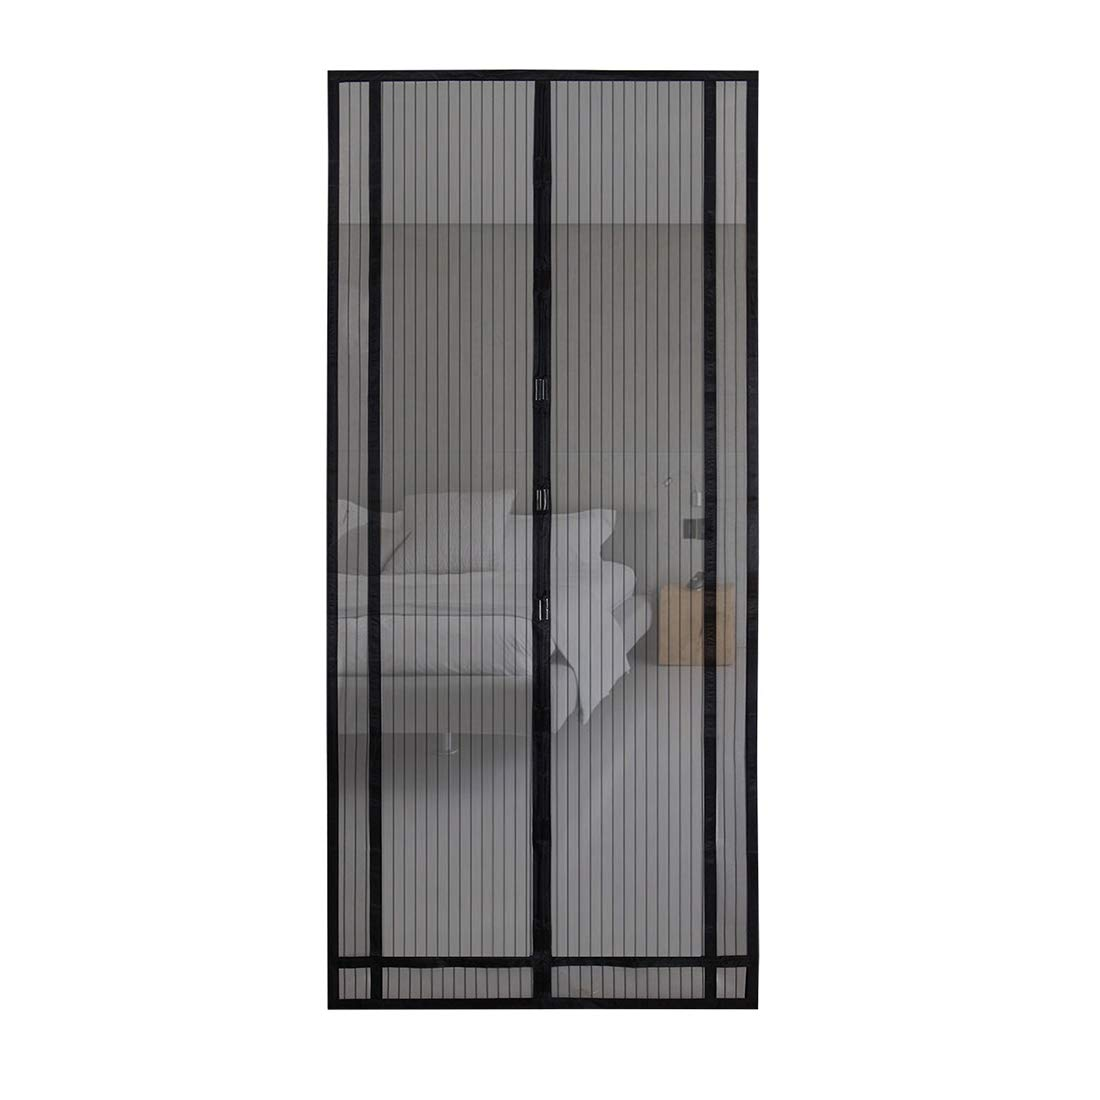 Sekey Anti-Insect trimmable Magnetic Door Curtain for Wooden, Iron, and Aluminum Doors in a Size of up to 90.6 * 63in 230/220 * 160/150/140cm (trimmable Height and Width) Black